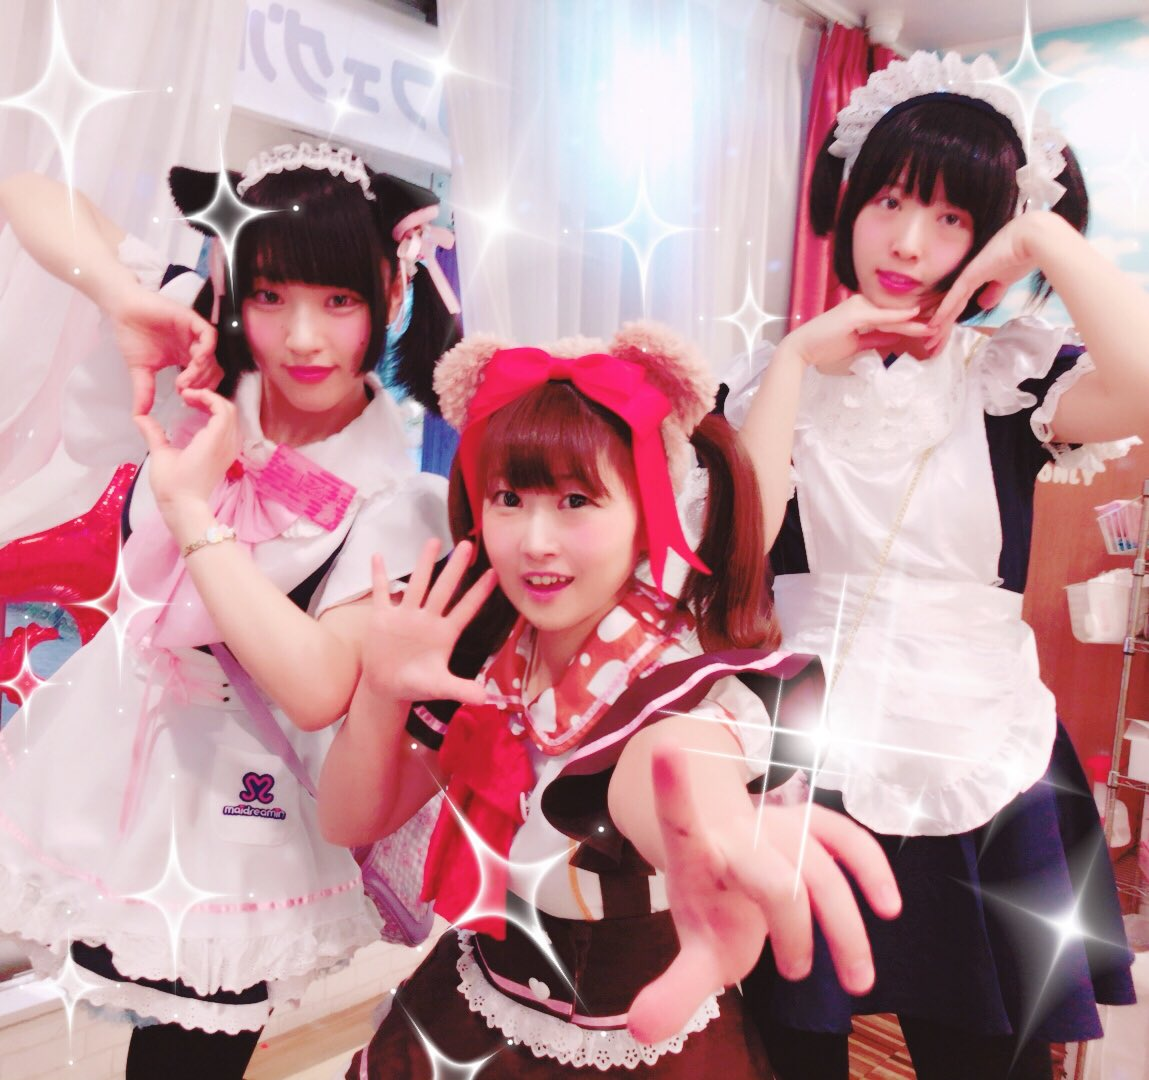 NekoPOP-maidreamin-Twin-Tail-Day-2018-02-02C